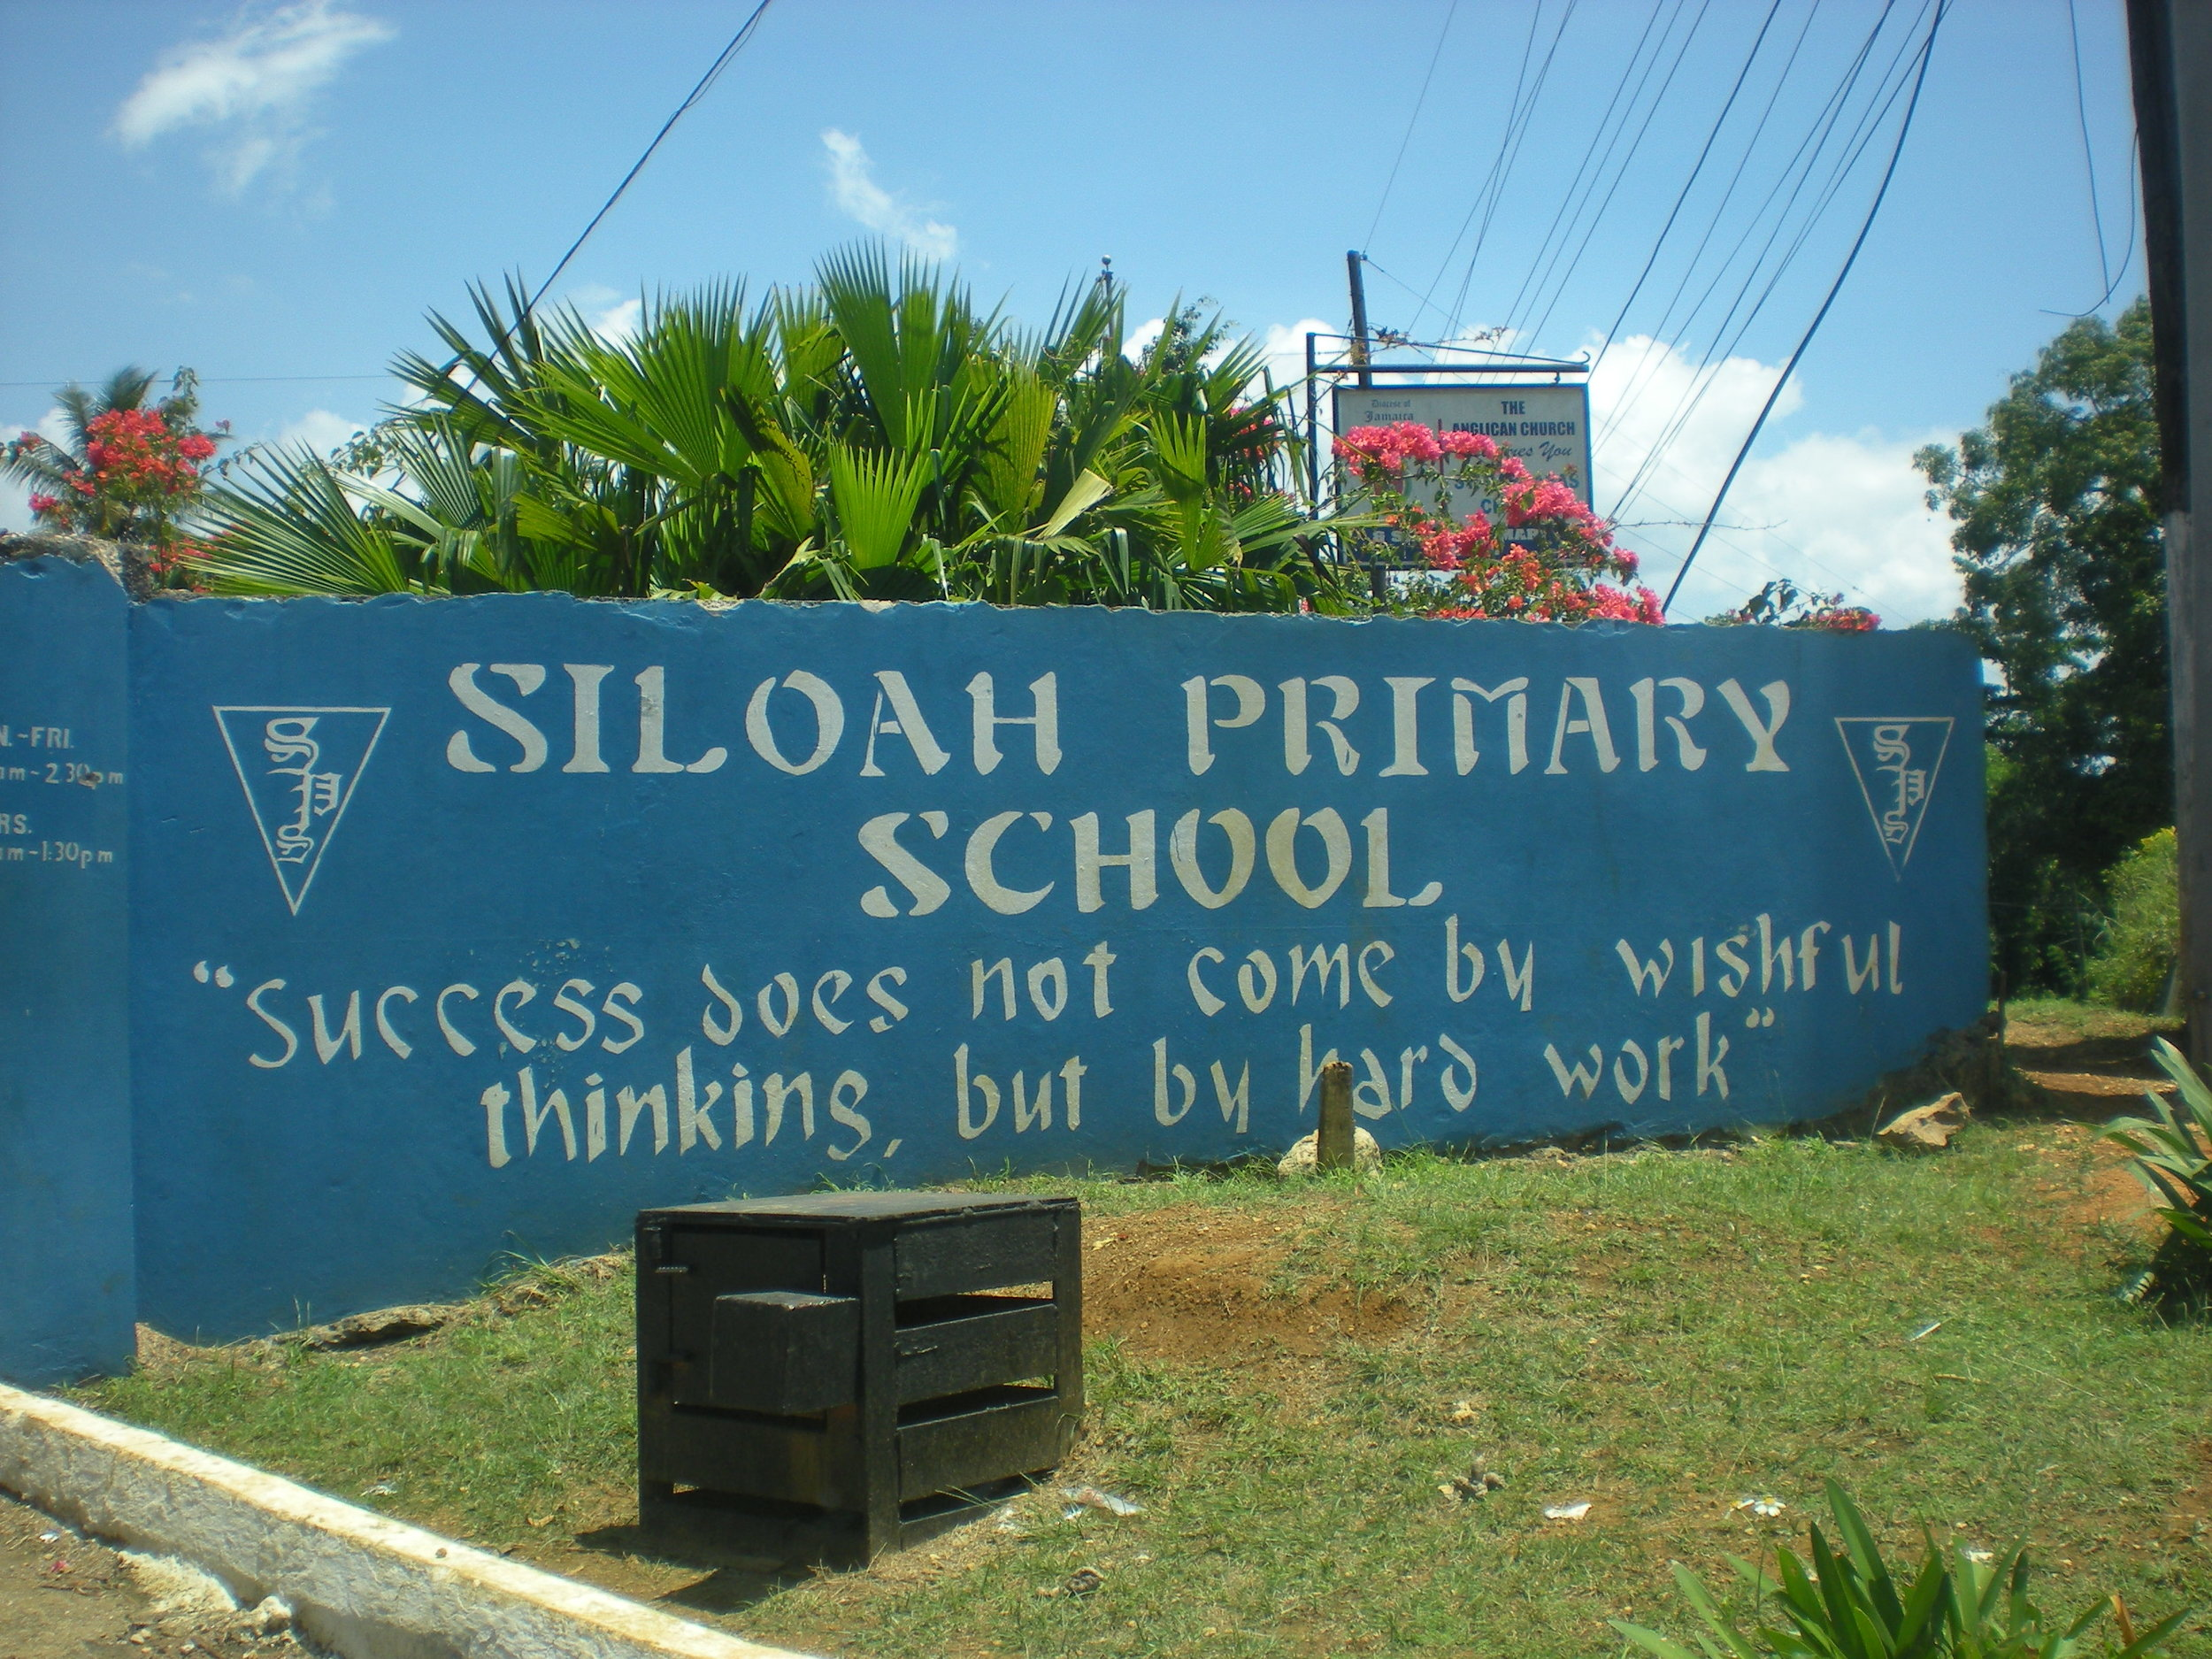 Sucess does not come by wishful thinking, but by hard work. Siloah primary school.